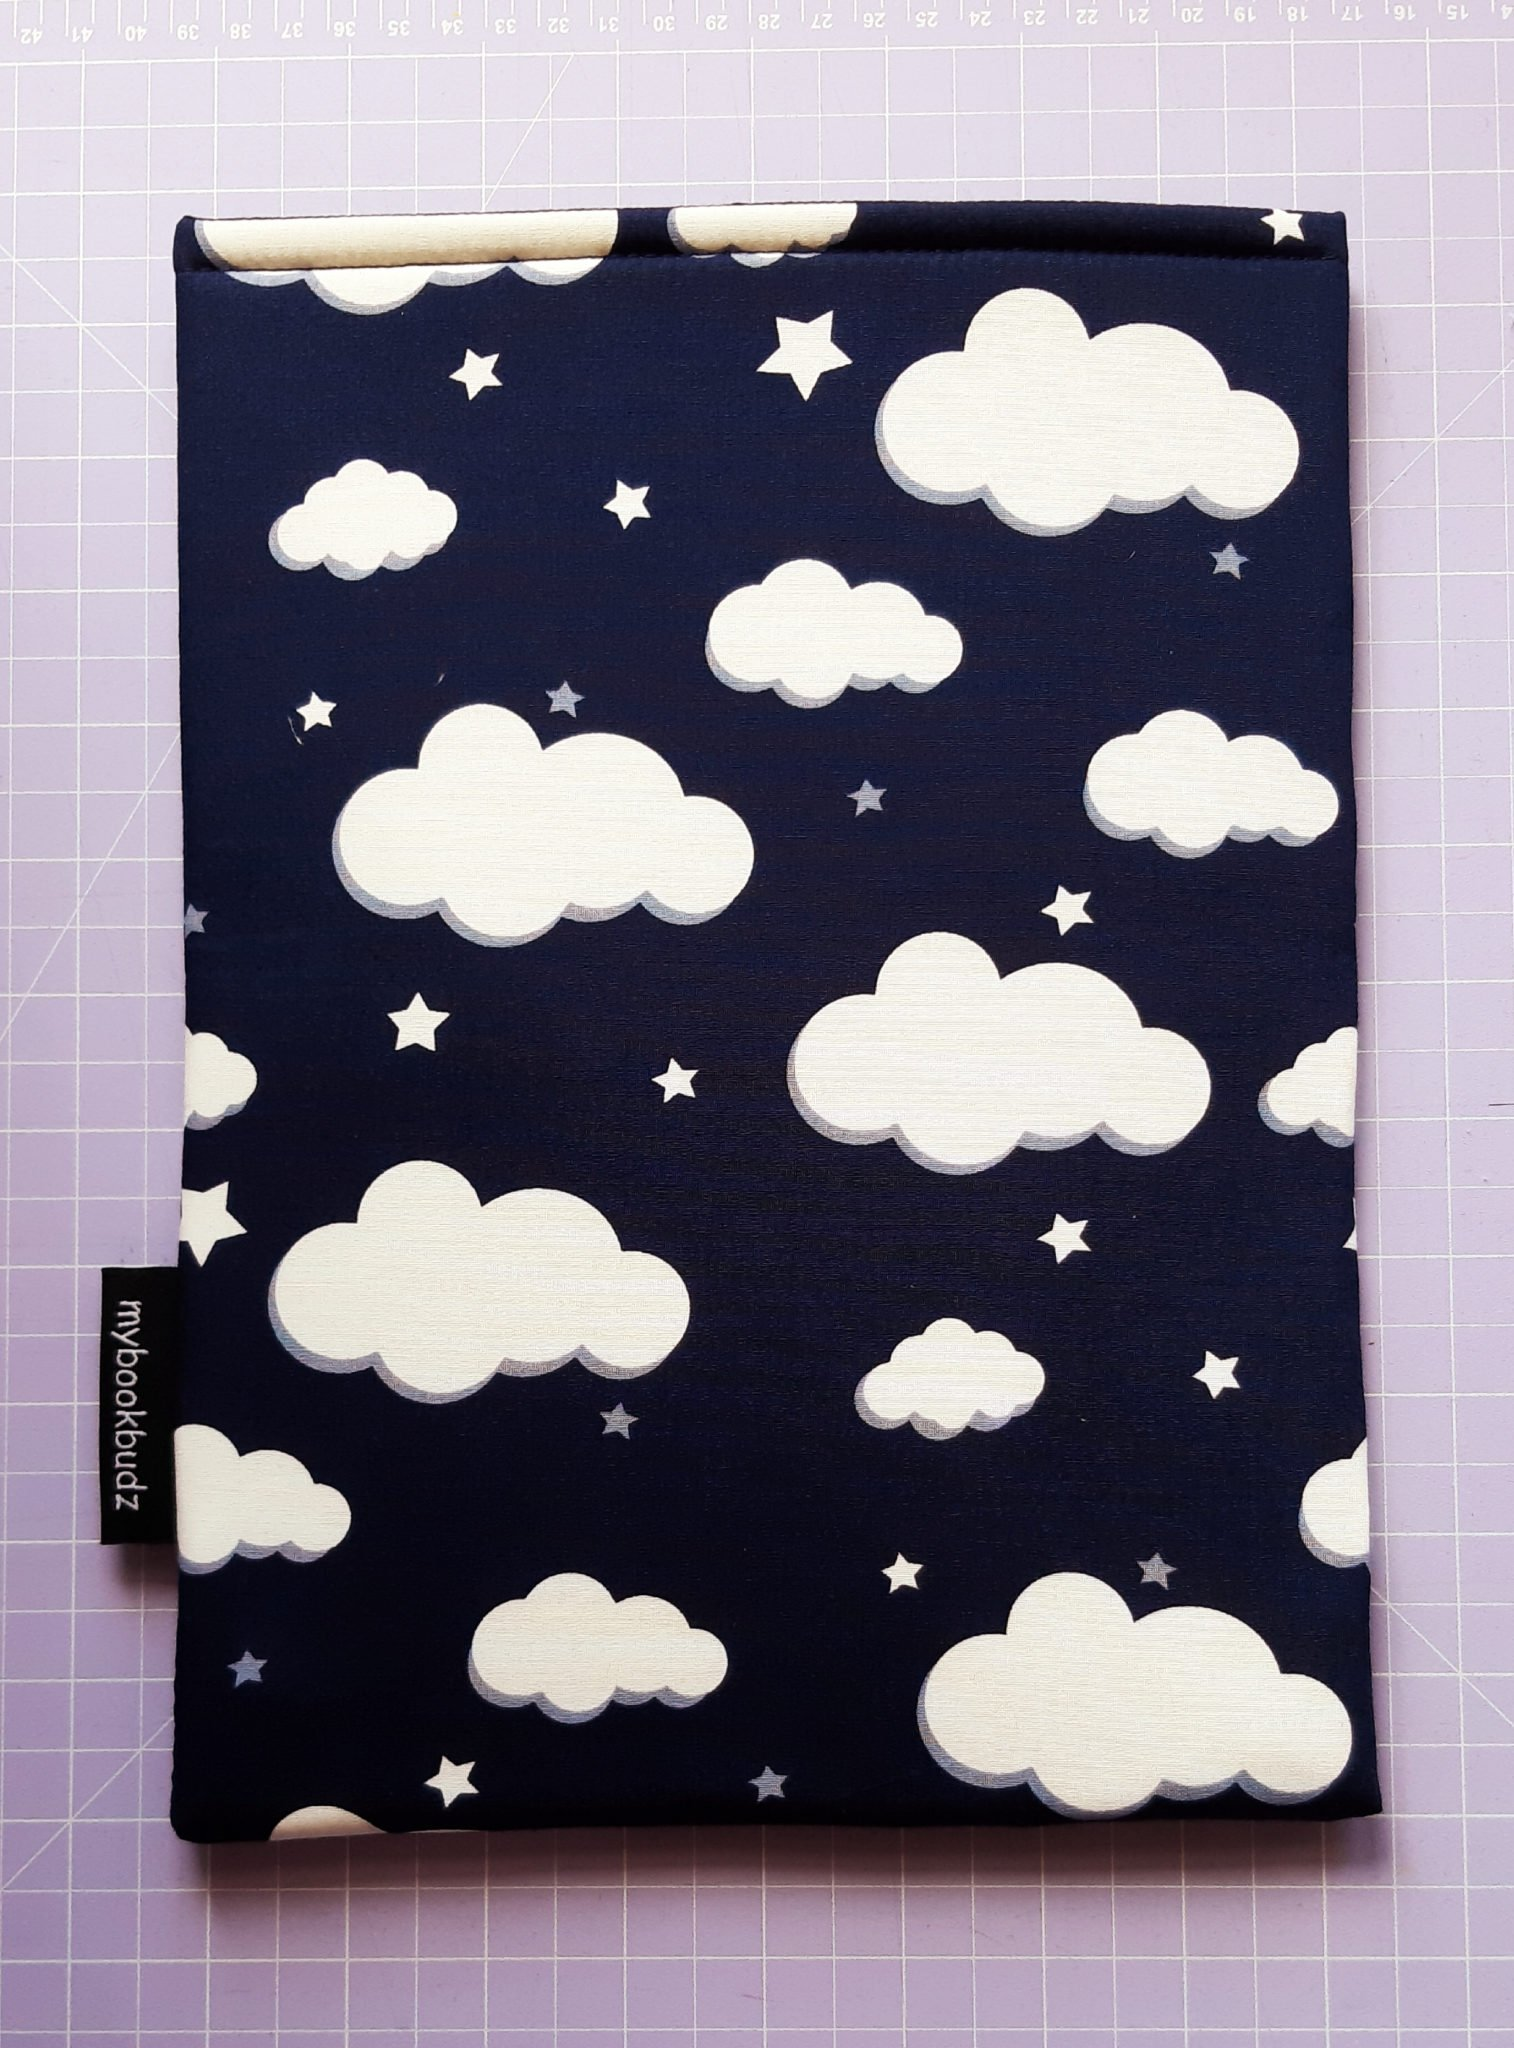 Booksleeve – Clouds